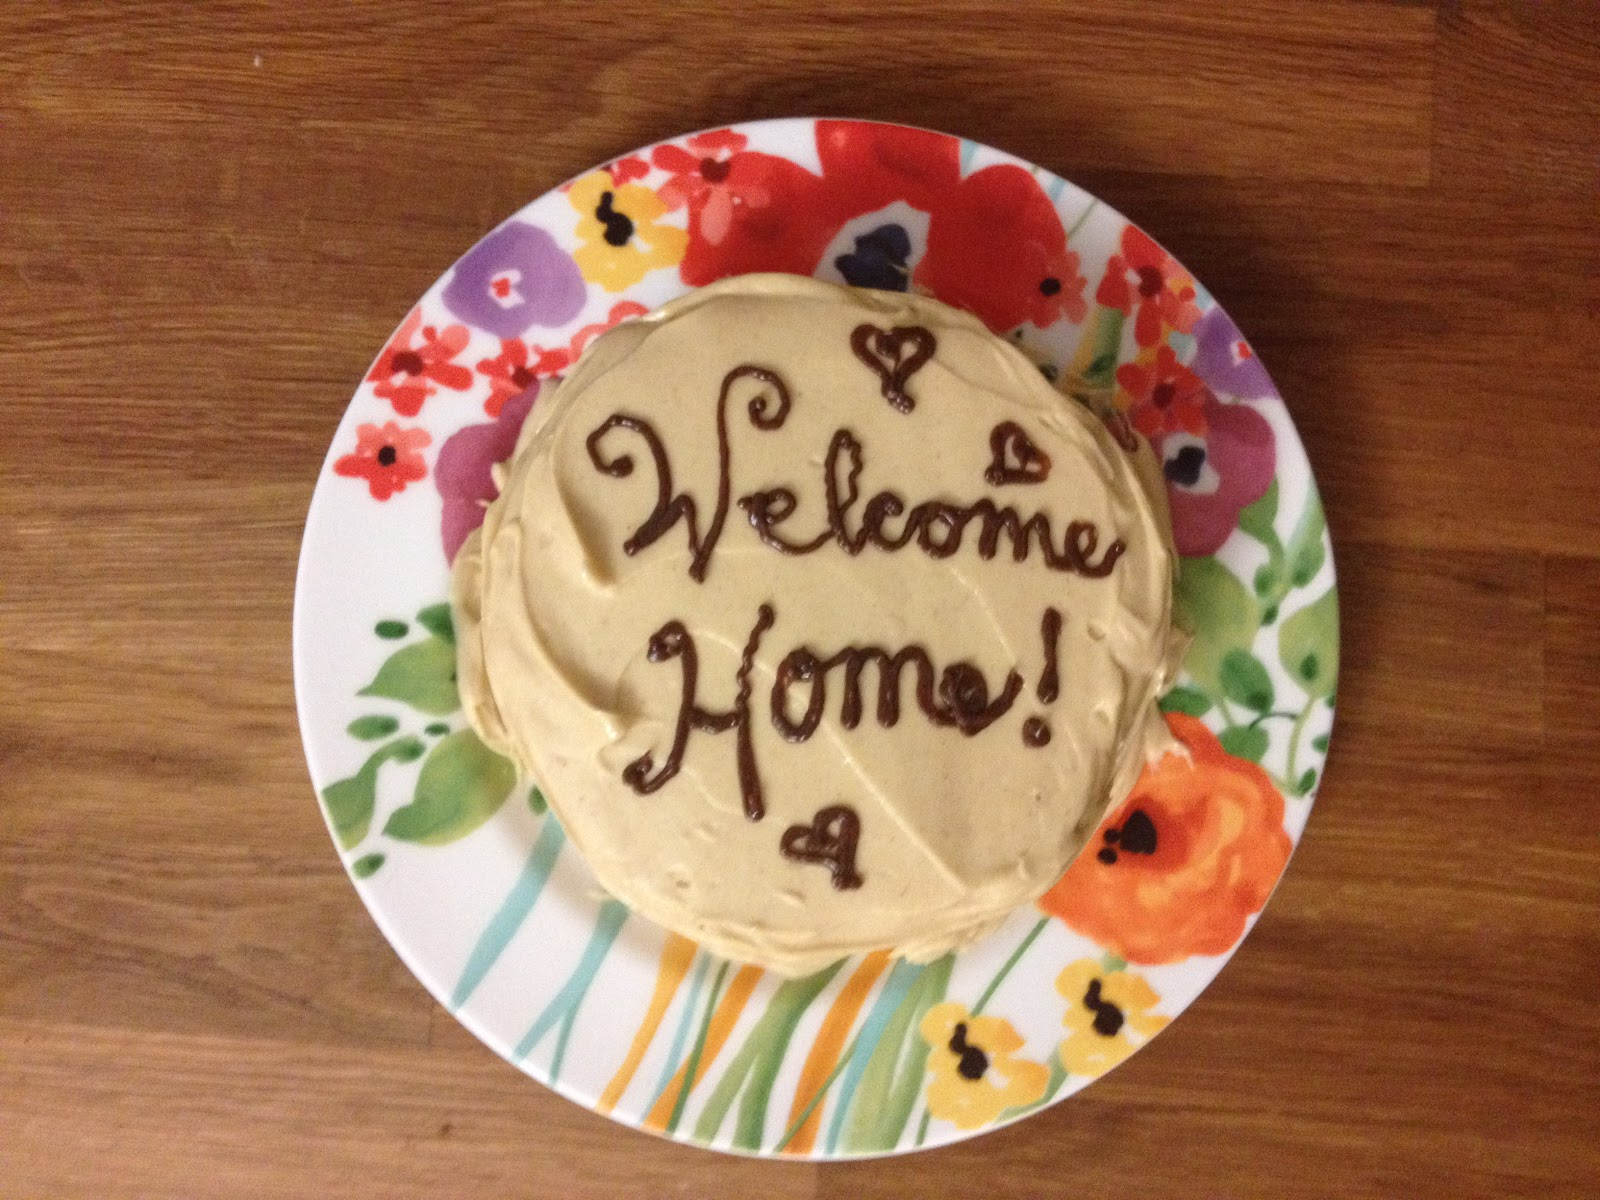 The baking yogi a welcome home cake for Welcome home cake decorations